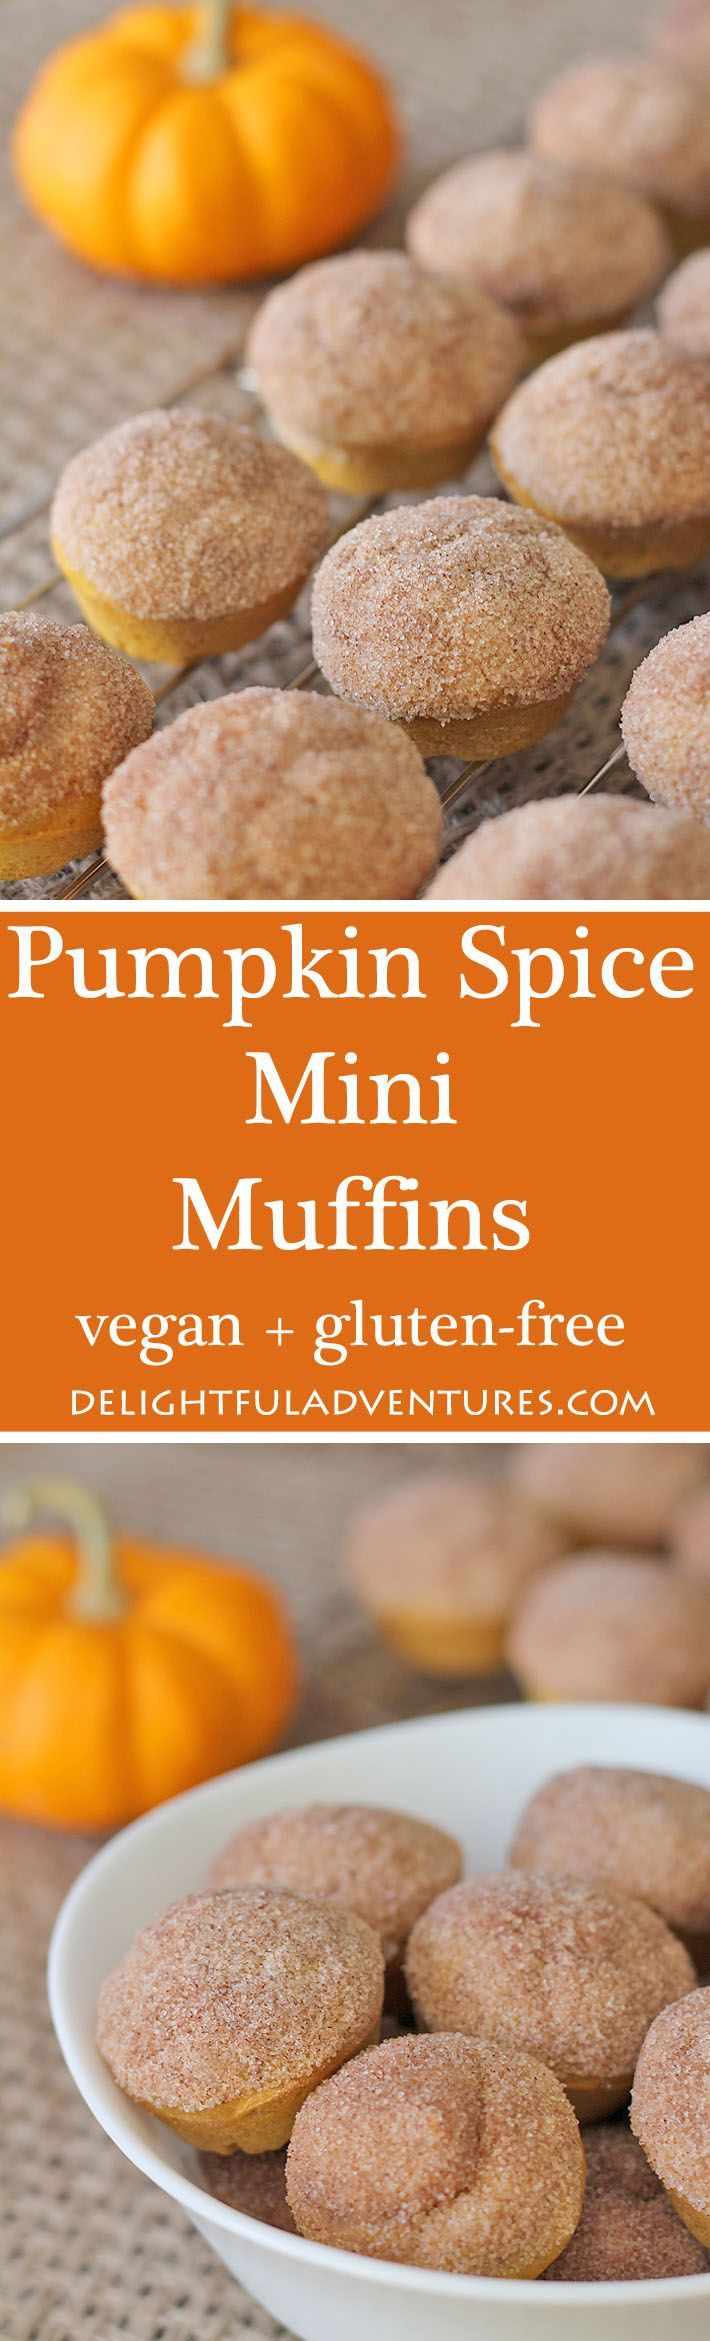 These vegan gluten free pumpkin spice mini muffins are the perfect treat for fall—or any other time of year. Enjoy them with a latte or on their own! via @delighfuladv